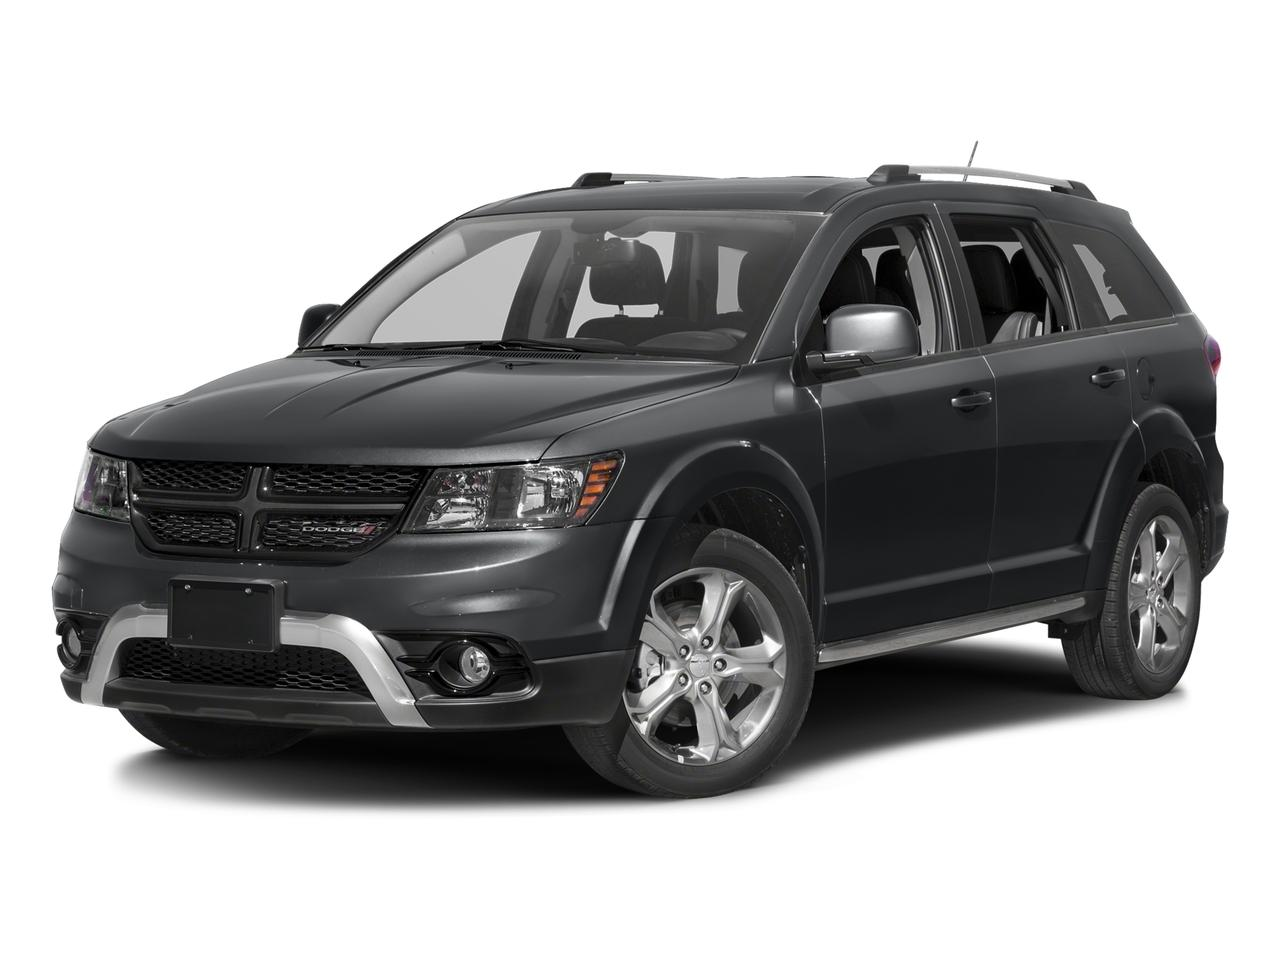 2017 Dodge Journey Vehicle Photo in Colorado Springs, CO 80905